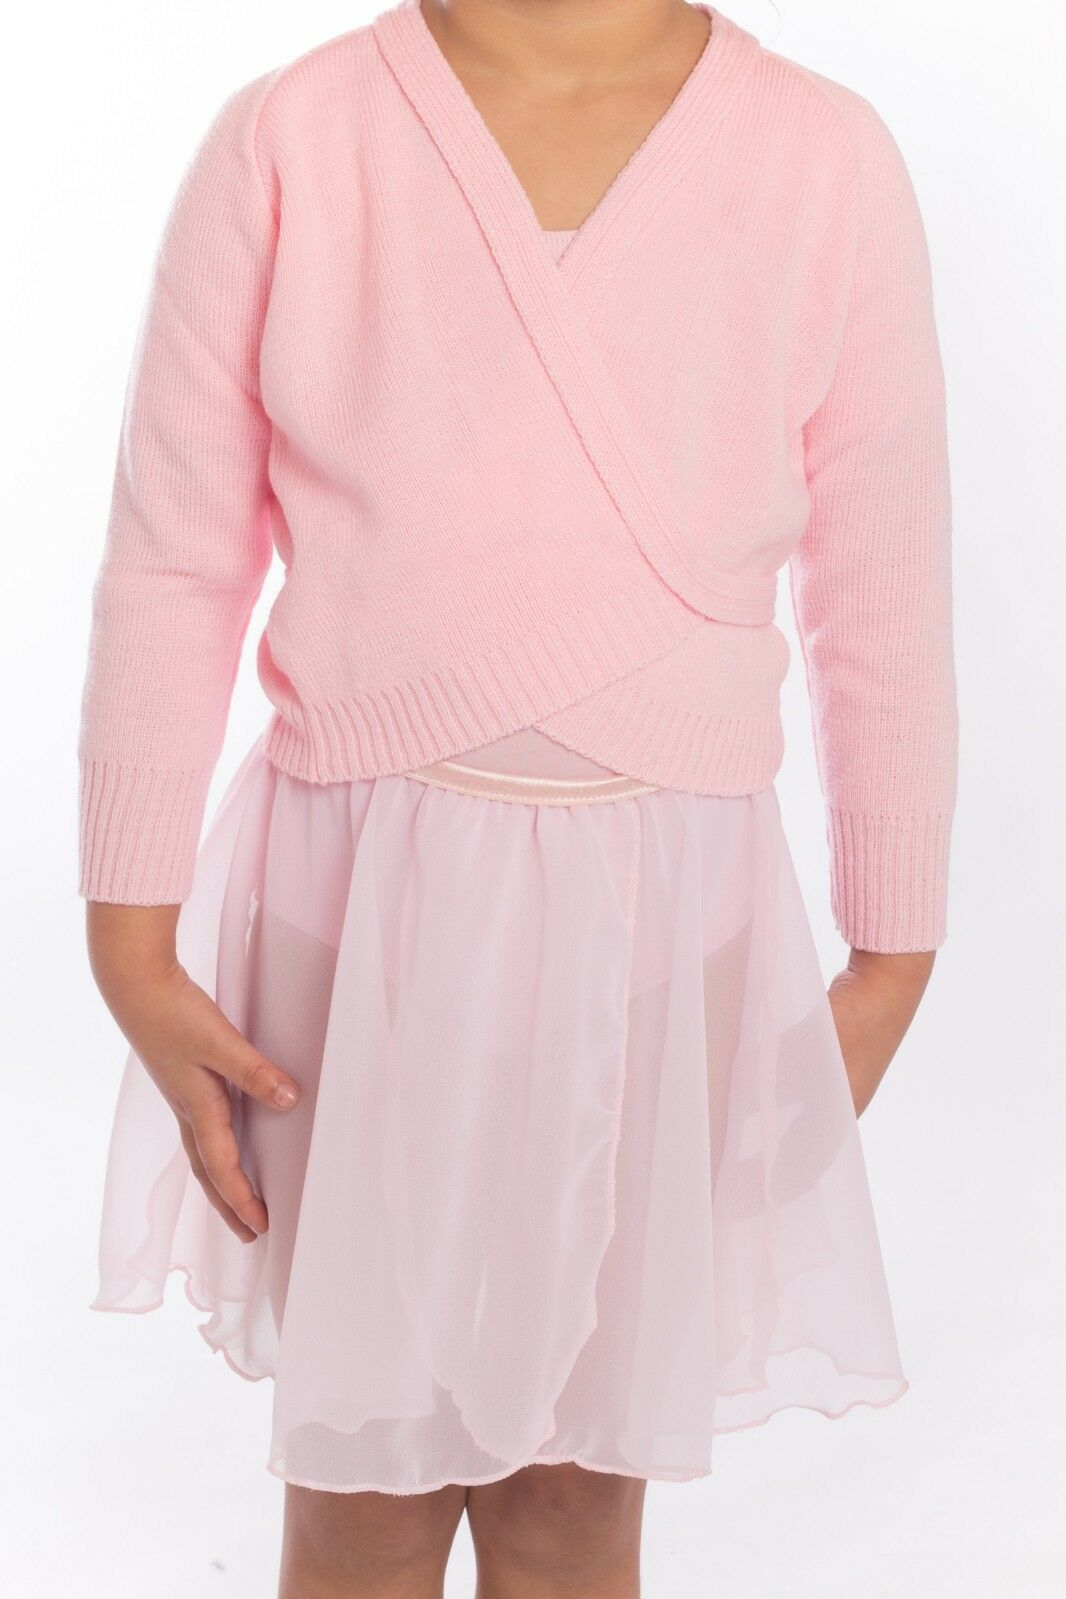 Ballet Cardigan, Wrapover mad by Roch Valley, PINK, LILAC or WHITE.